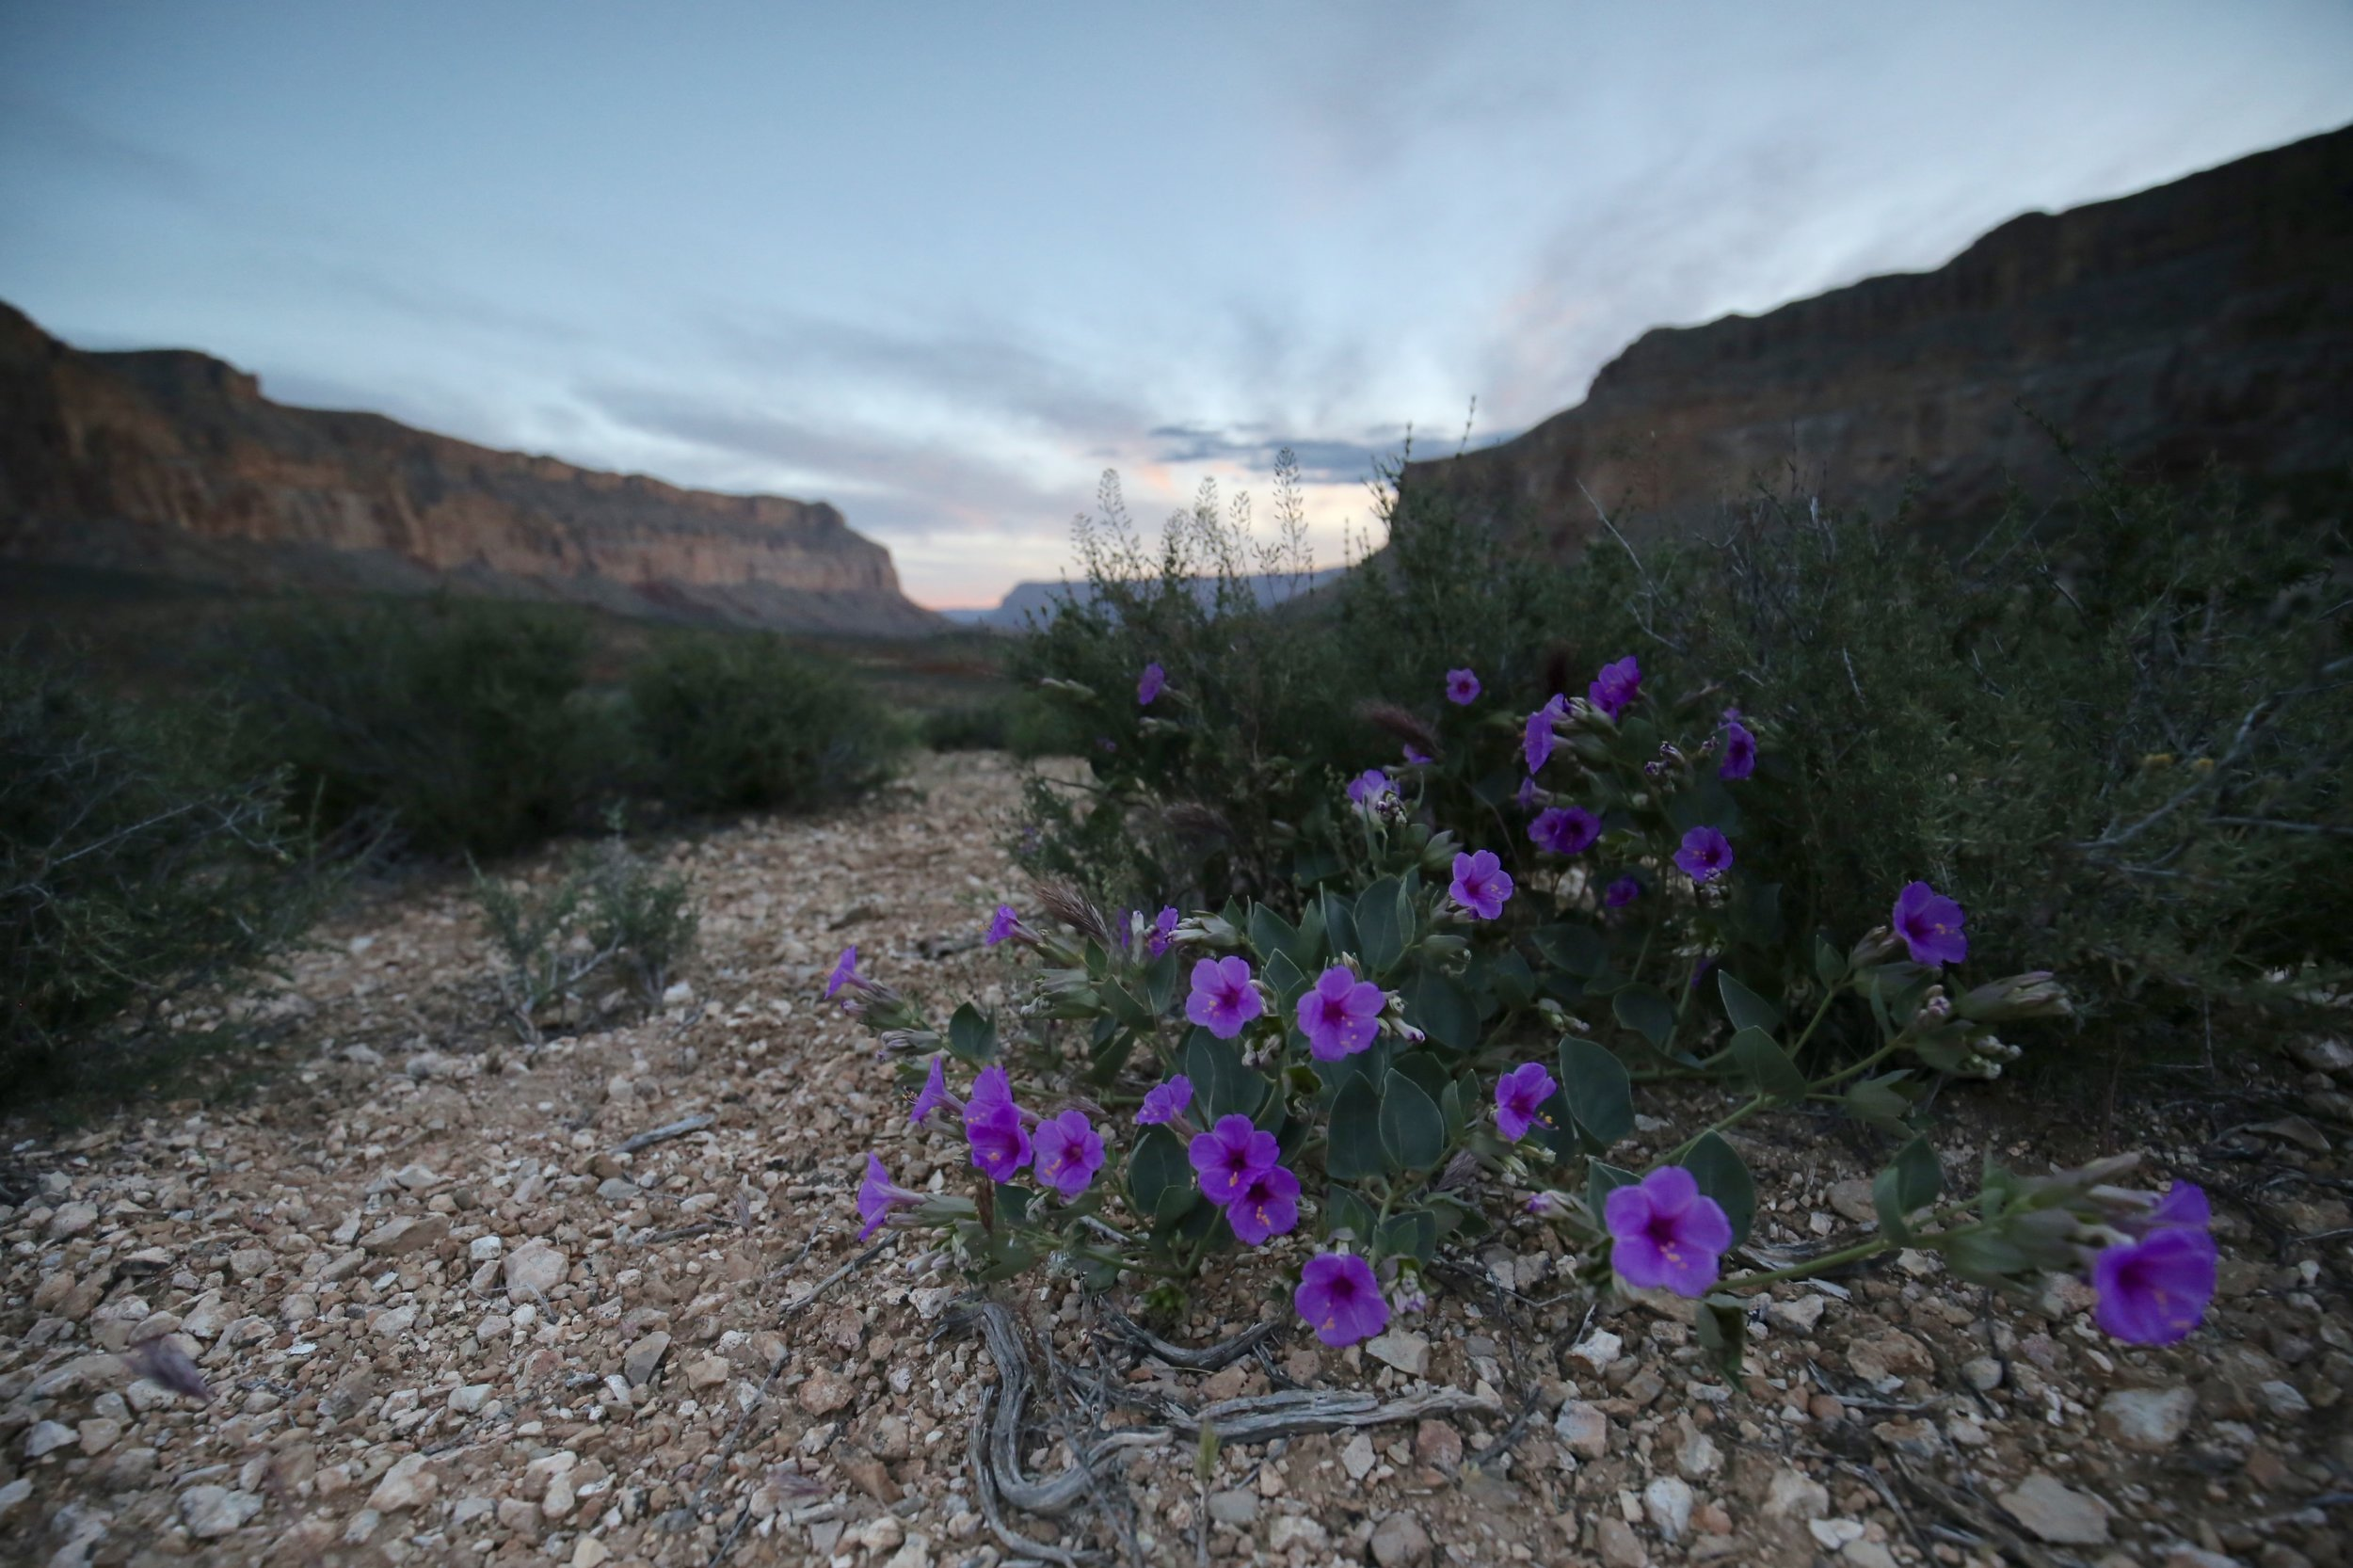 Purple flowers blooming at dawn in the Grand Canyon.